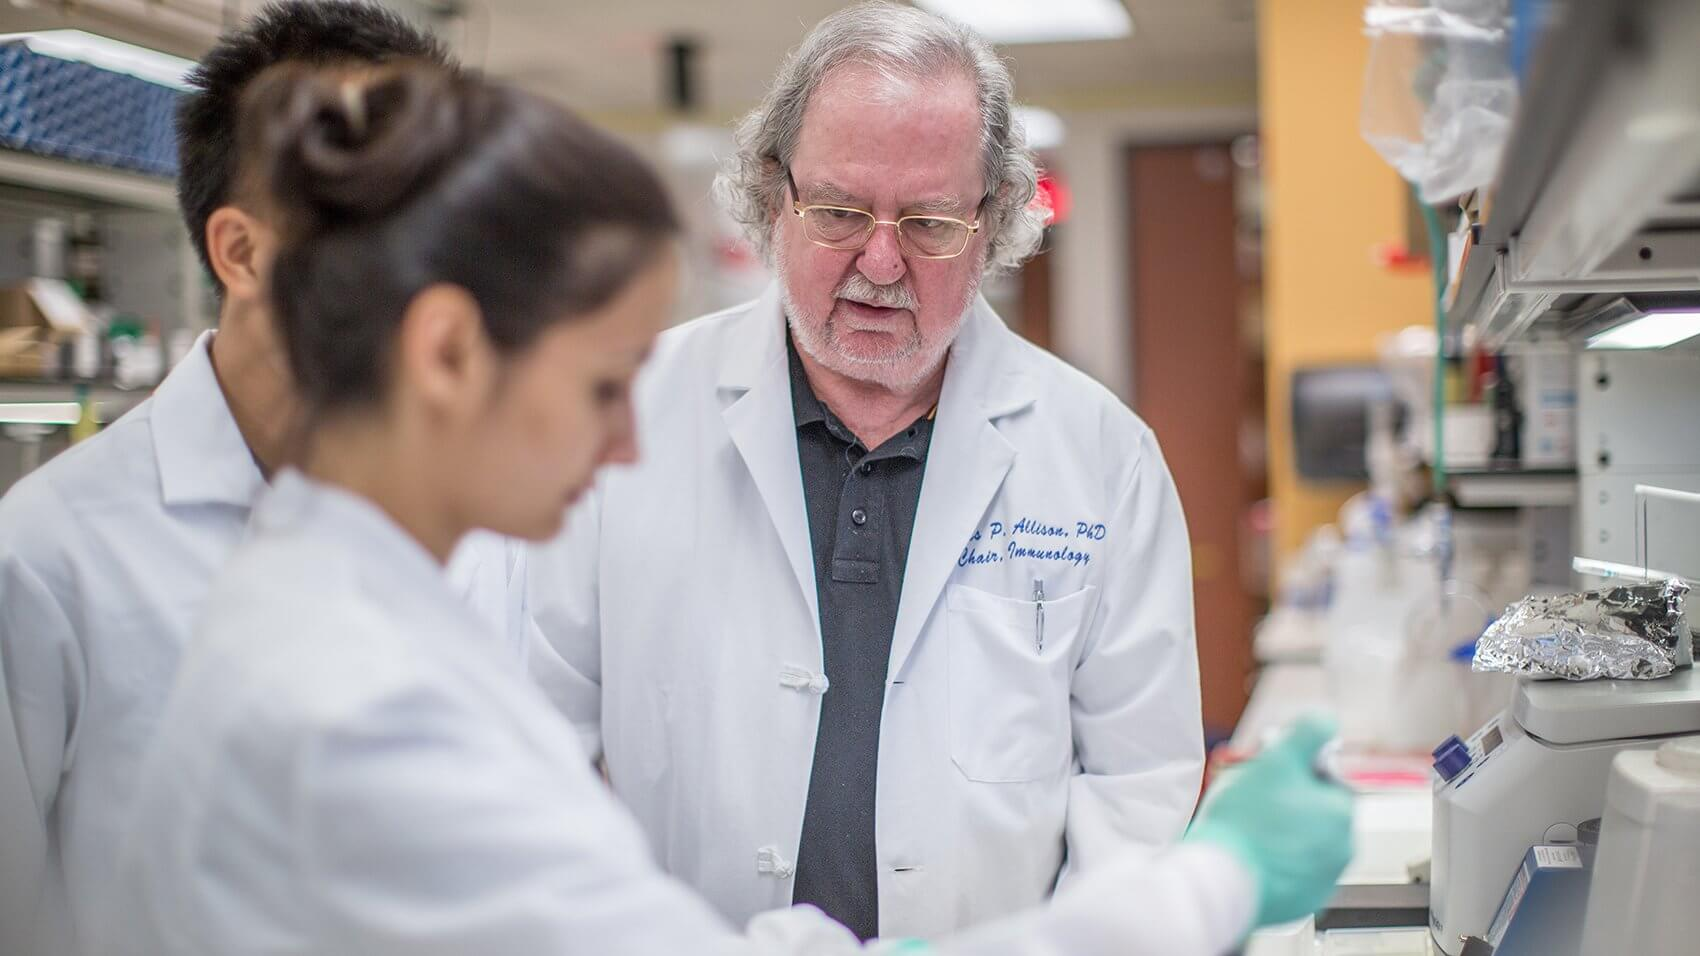 Allison and the researchers at his MD Anderson labs are seeking new checkpoint targets, as well as more effective combinations of treatments.